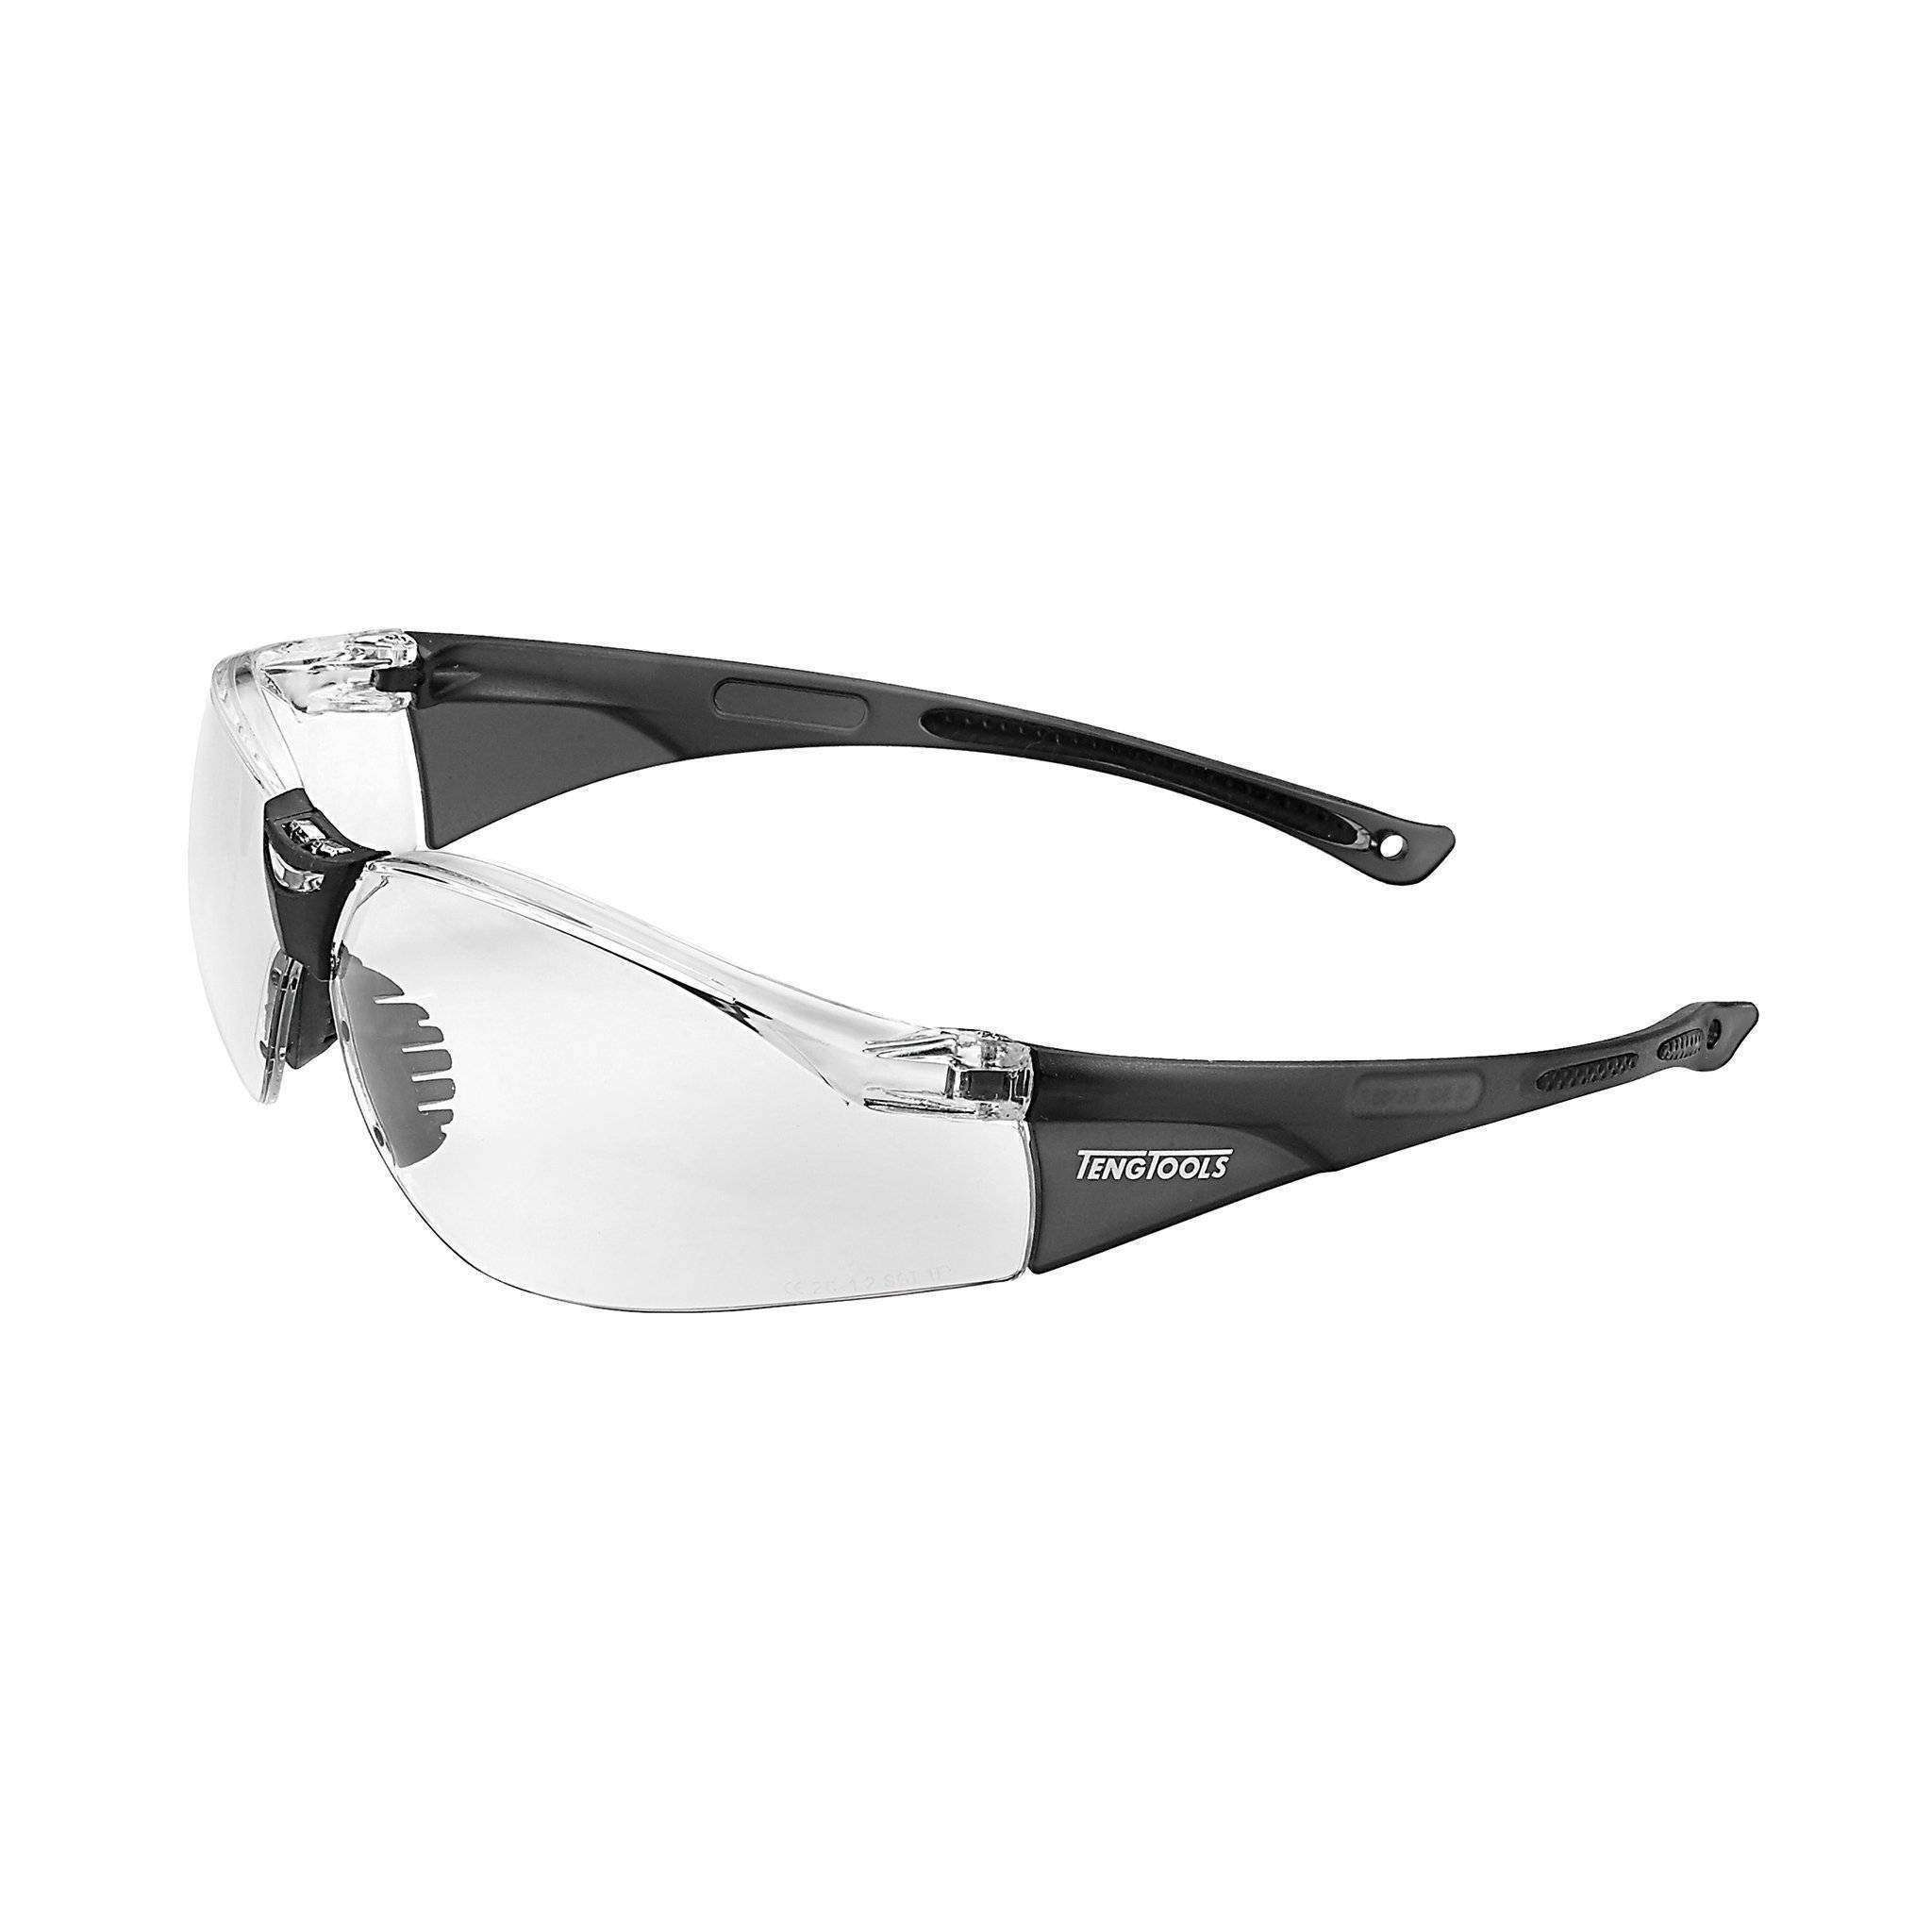 Teng Tools SG713 Clear Lens Sports Inspired Design safety Glasses - Teng Tools USA